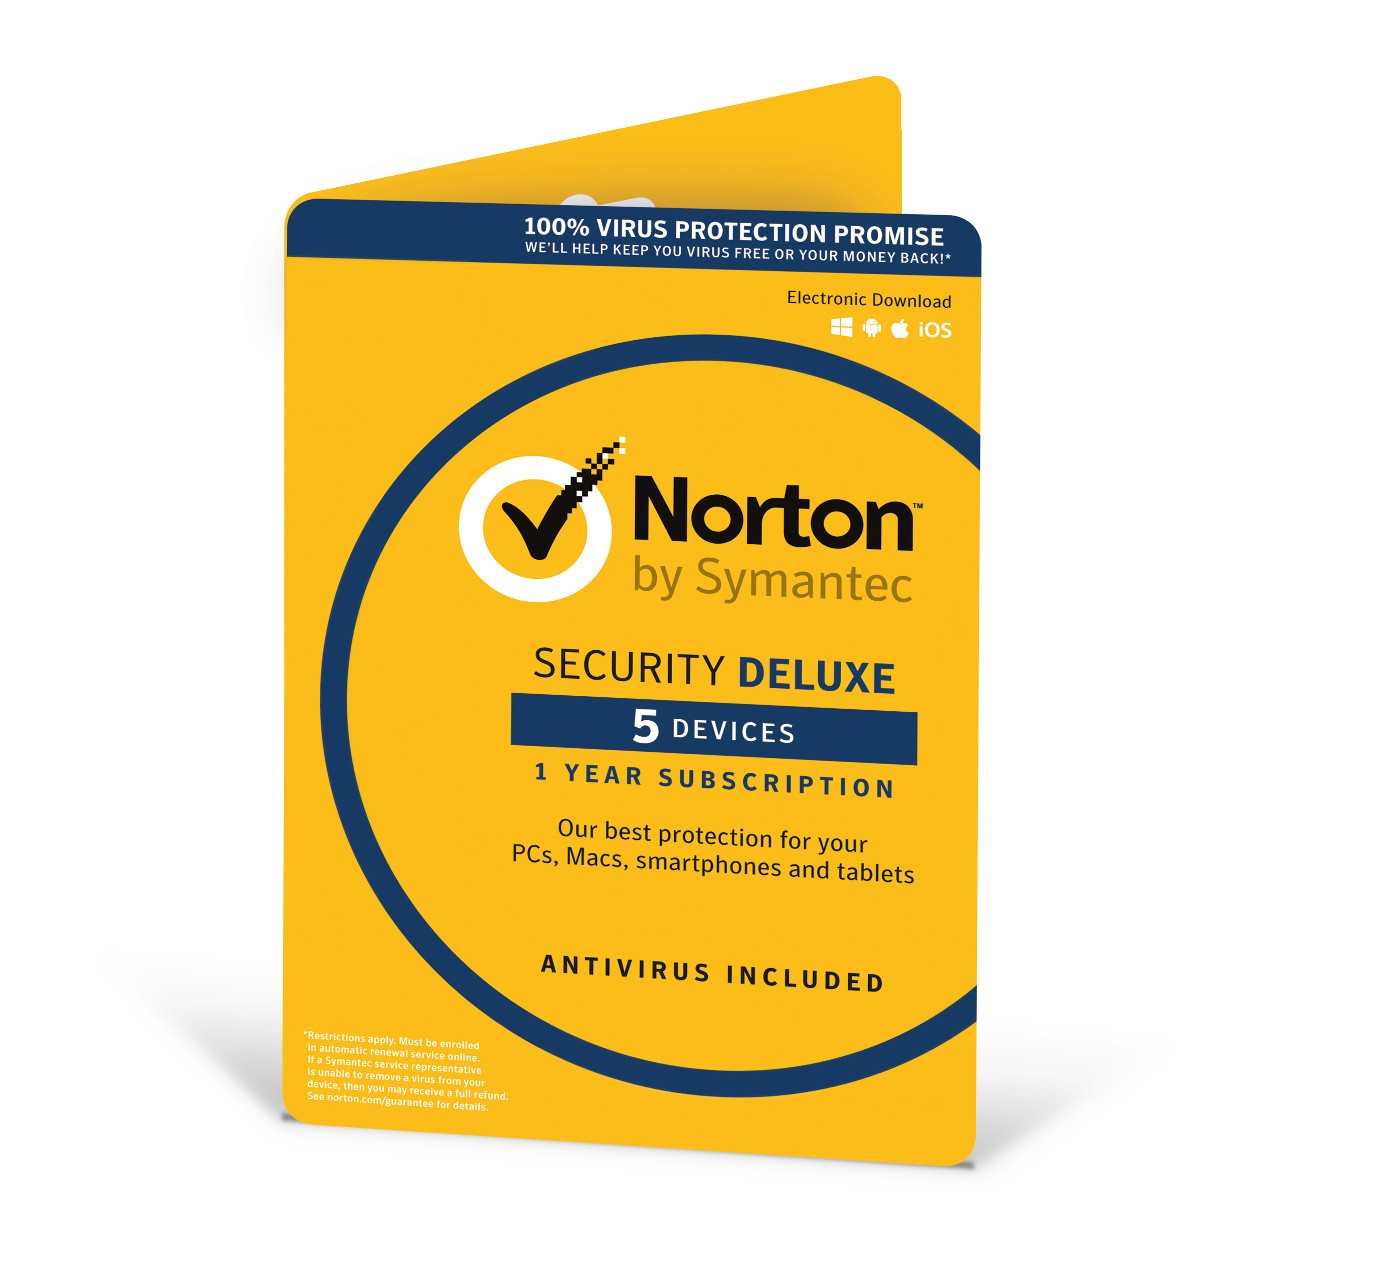 SYMANTEC NORTON SECURITY DELUXE 3.0 IN 1 USER 5 DEVICES 12MO CARD DVDSLV RET